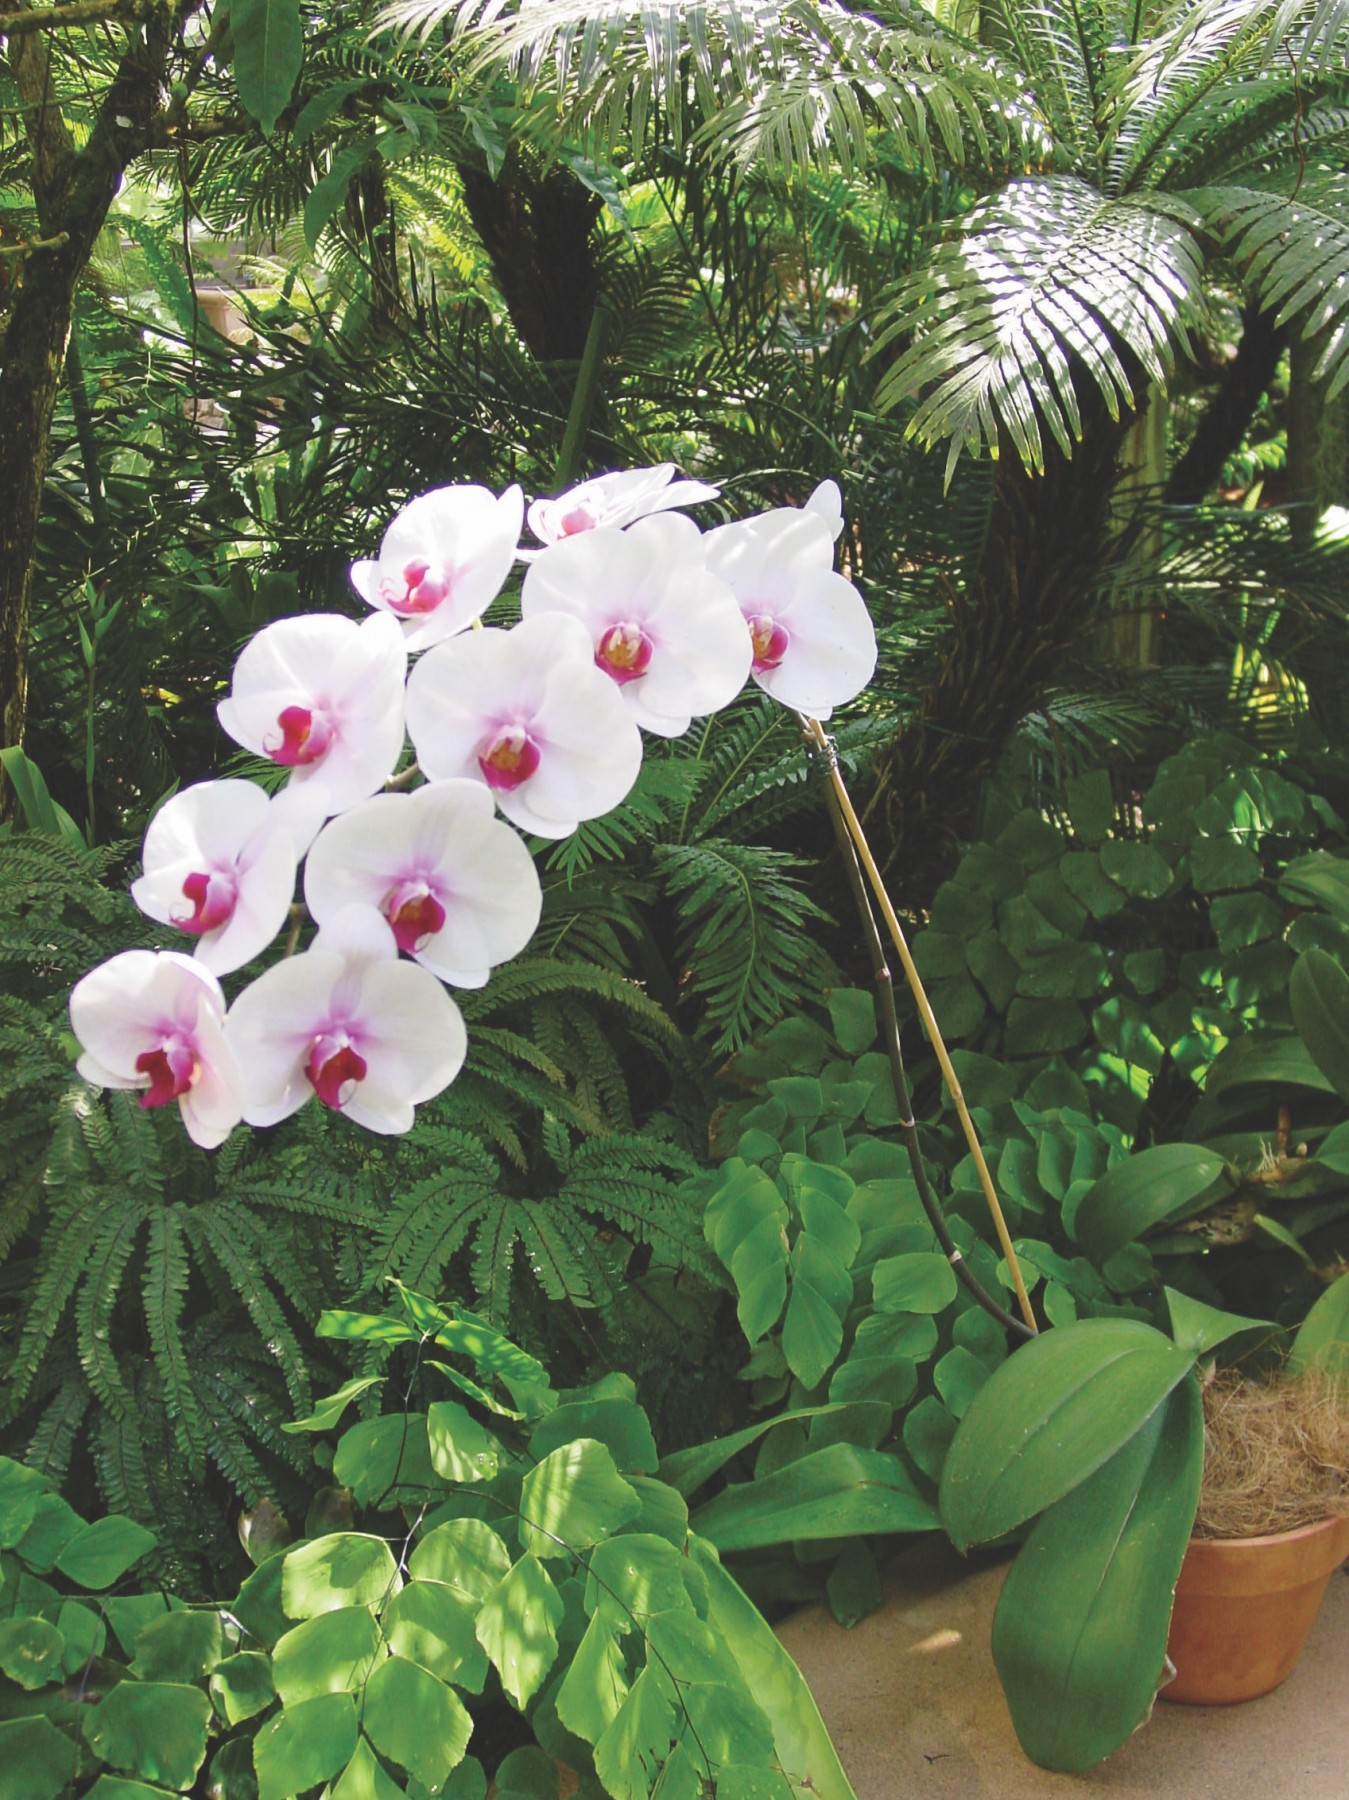 Growing Orchids At Home And Daily Care Of Flower